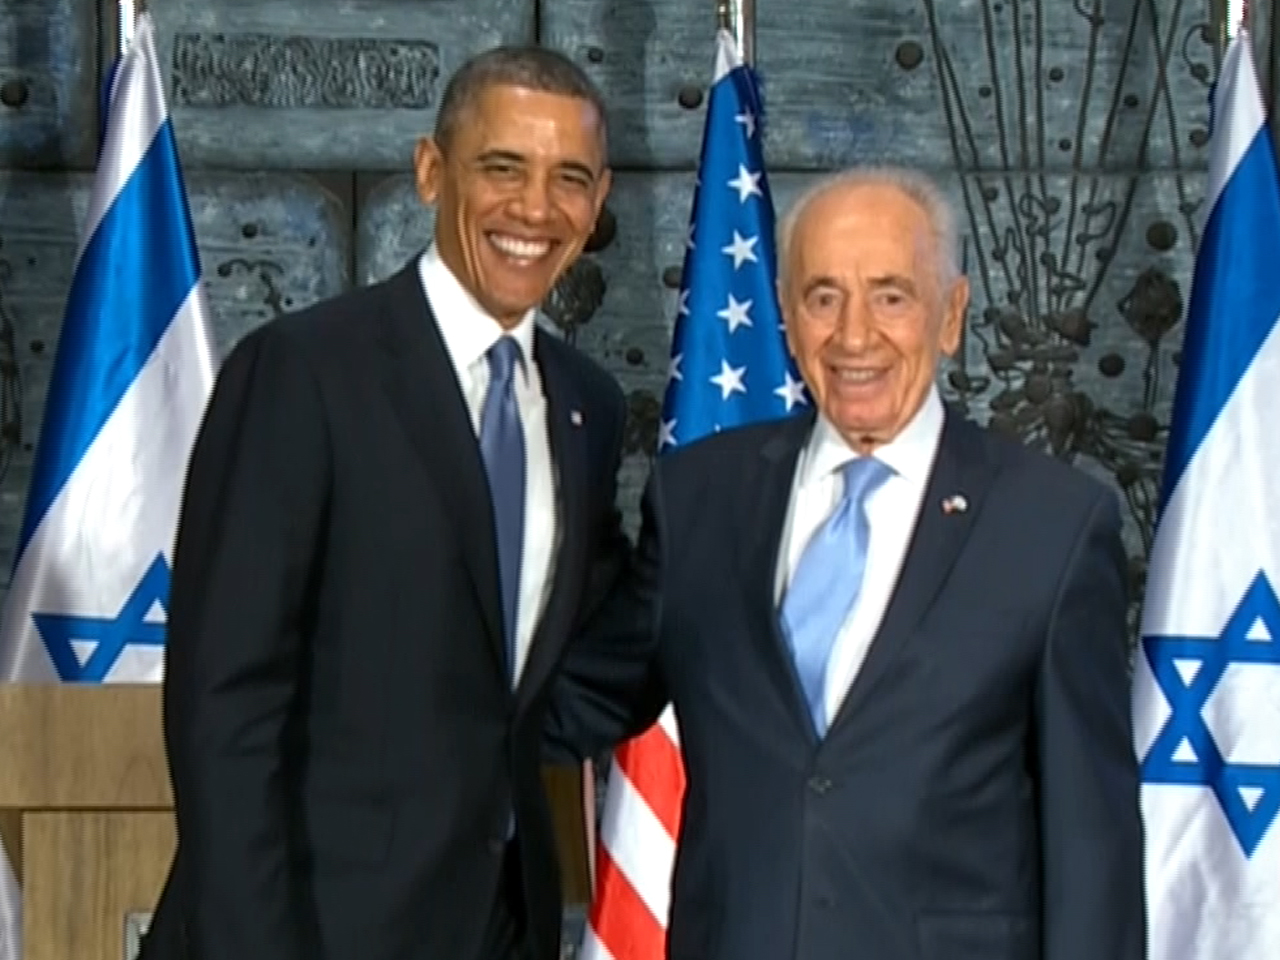 JUST IN: Pres. Obama Orders Flags To Be Flown At Half-Staff In Honor Of Shimon Peres